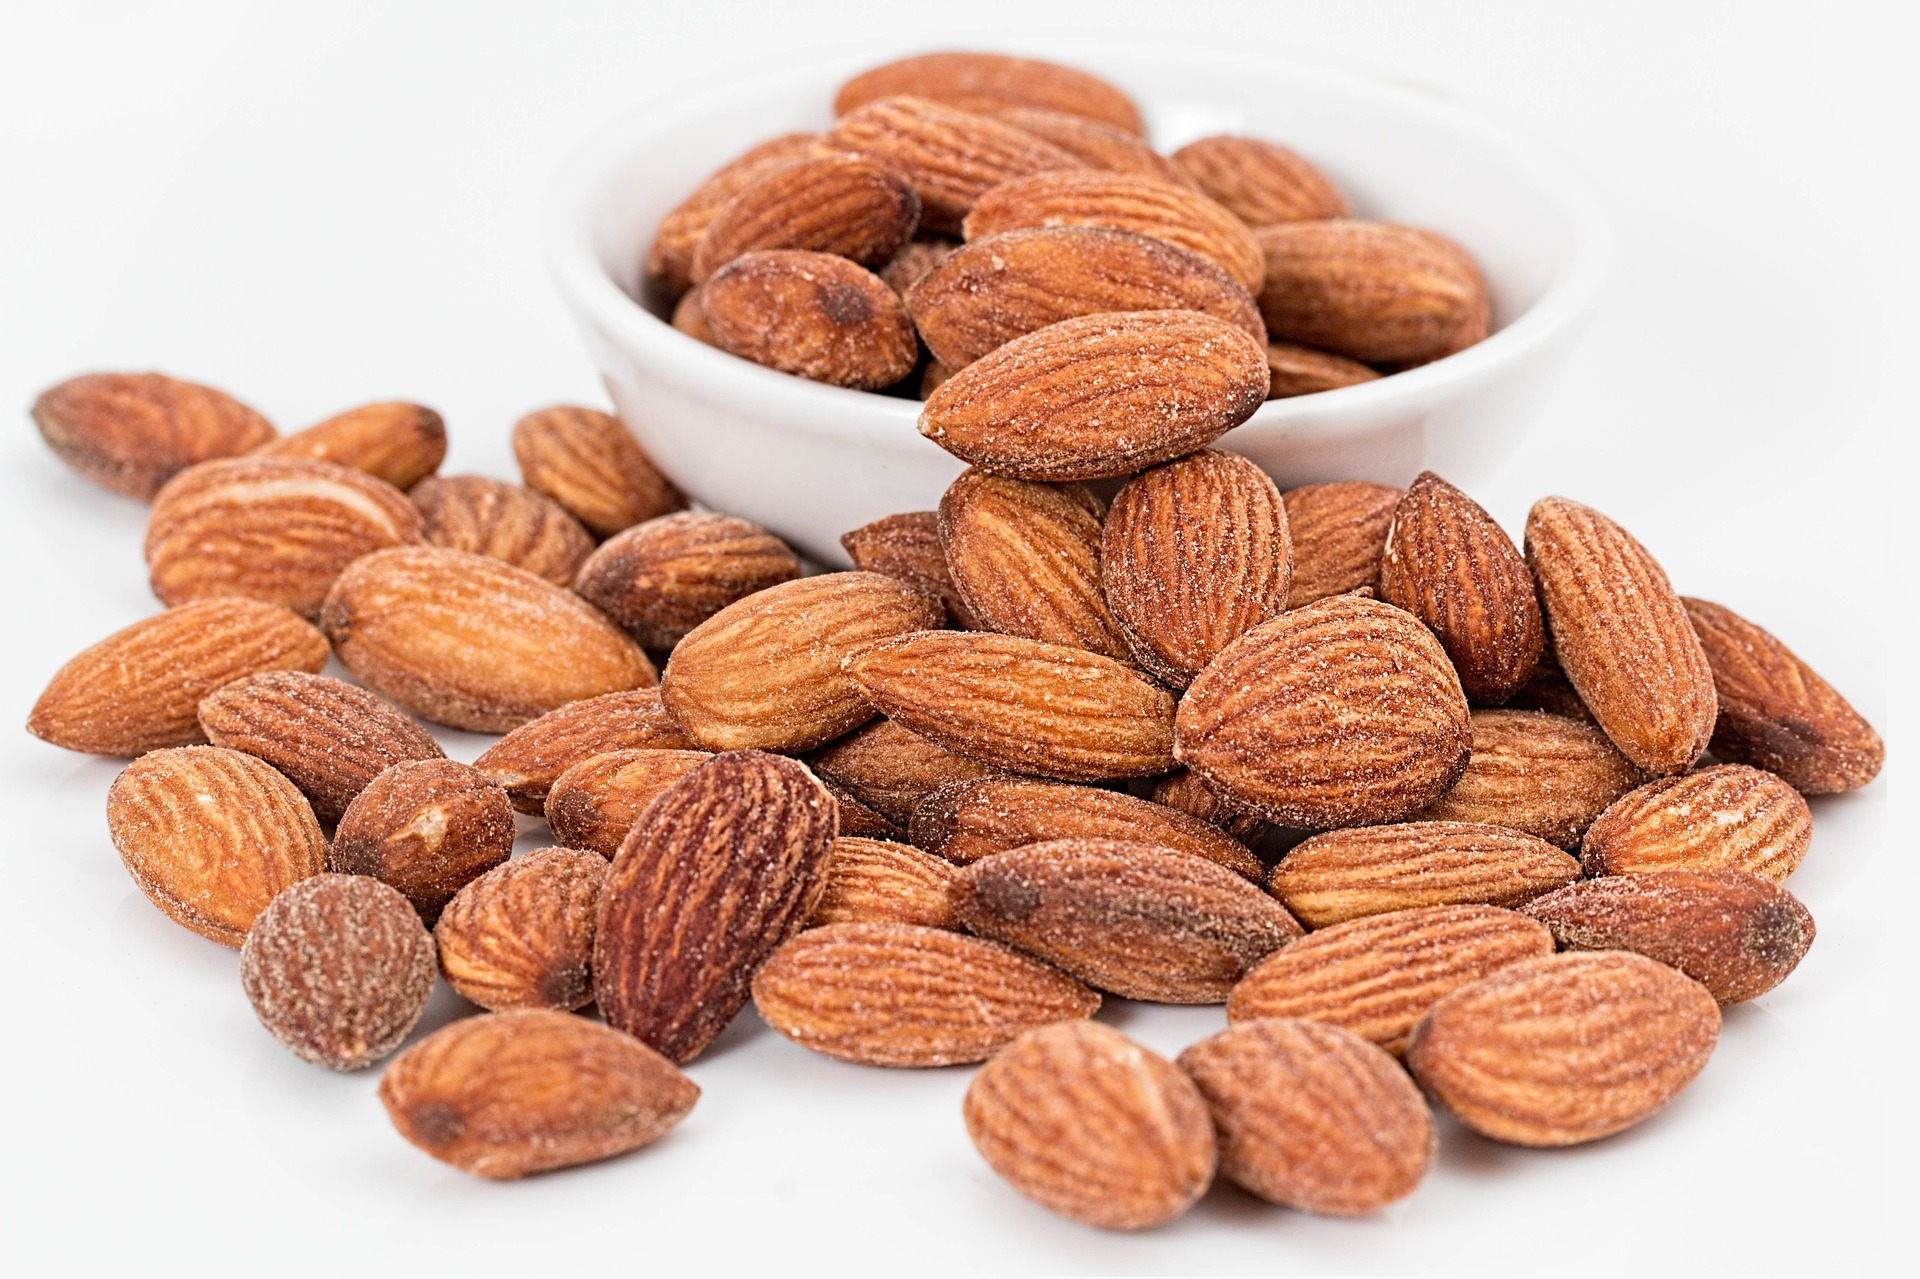 Super Foods almonds handful white backgroud